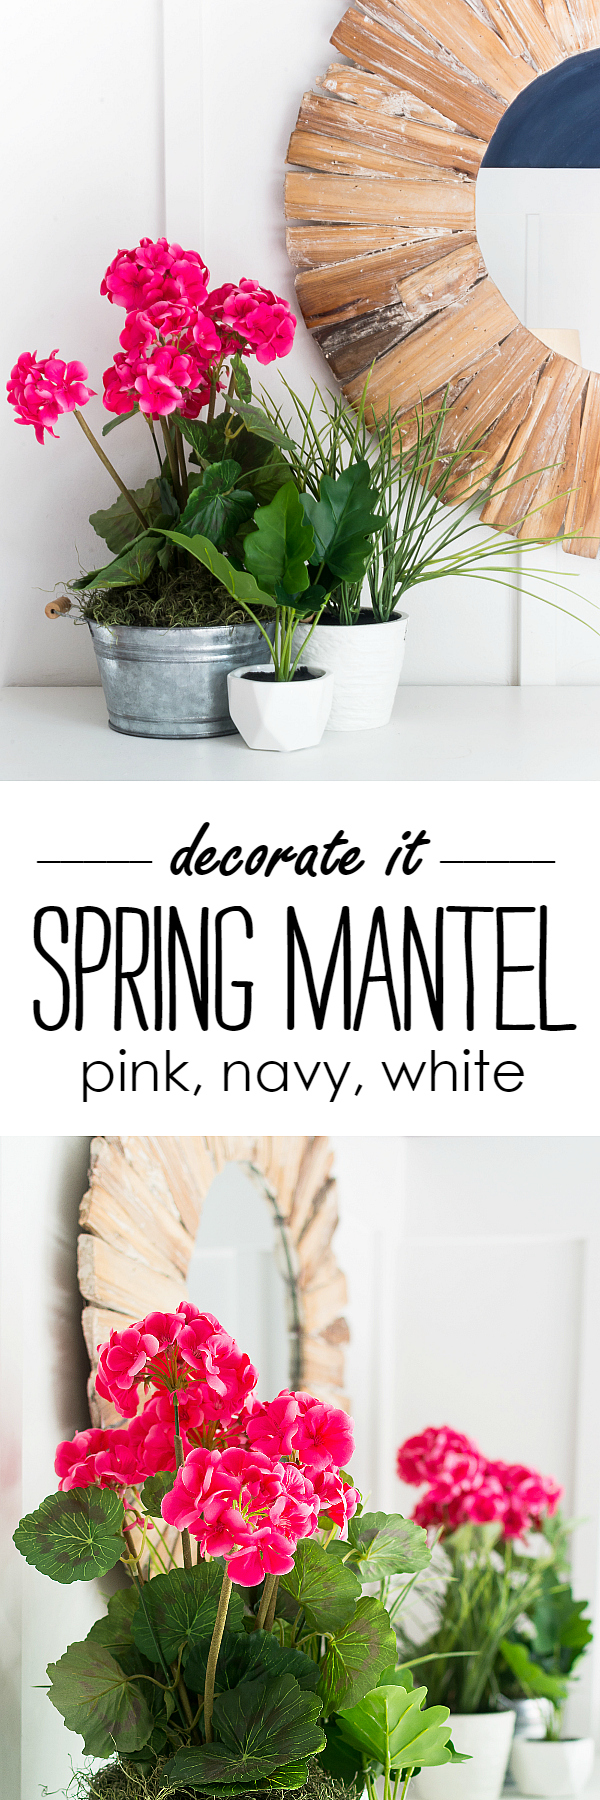 Spring Mantel Ideas in Pink and Navy